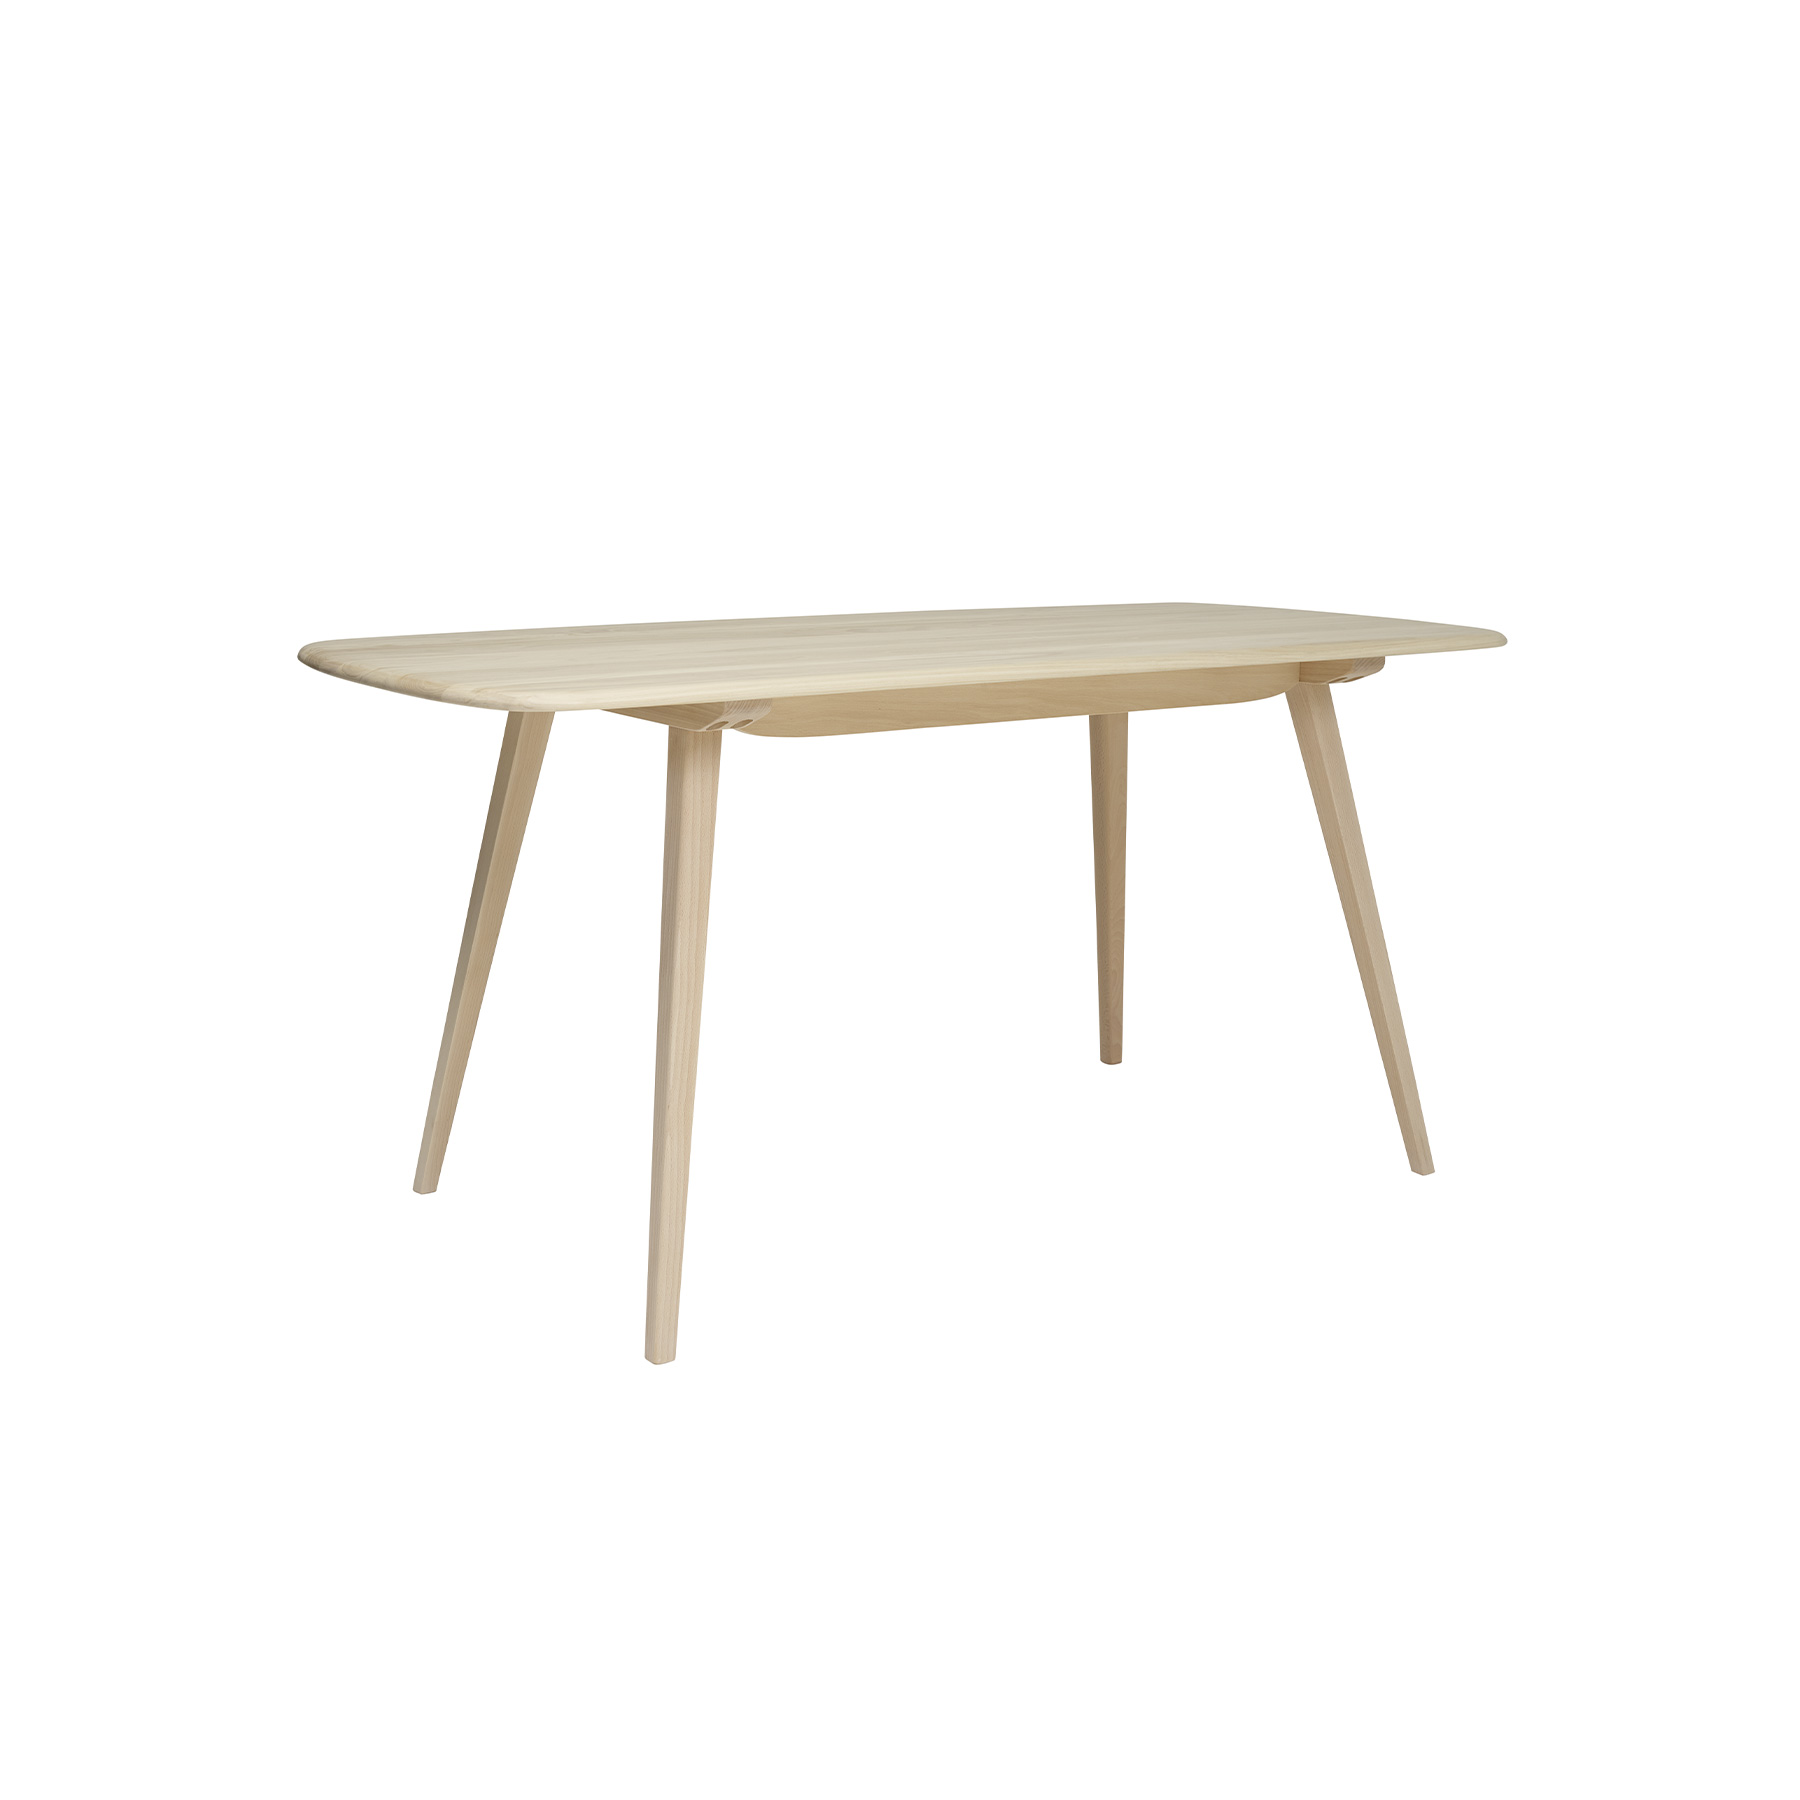 Originals Plank Table - The Ercol Originals are pieces of timeless and classic design that never date or show their age. It is furniture that is as relevant and as functional now as it was when it was created in the 1950s and 1960s. This furniture was designed by Ercol's founder, Lucian Ercolani, who drew for his inspiration on the time-proven local design and craft in the Chiltern Hills around where he lived and built his first factory in 1920 in High Wycombe. Using the strength of beech and the beauty of elm he carried this definition on into a huge variety of dining, kitchen, and school chairs and then extended the idiom into the low easy chair range epitomised by the 206 armchair and the studio couch. The beauty of the colour and the grain of the elm took Lucian on to use elm for the tables and cabinets of the Originals and the following Windsor range. This stylish dining table boasts outward facing tapered legs and a solid Ash top with attractive rounded edges, creating a simple but contemporary feel. This table seats 4-6 guests. It will be finished in your choice from a selection of lacquer finishes that both protects the timber, whilst enabling you to choose the look to match your style and décor. Alternatively, you can opt for one of Ercol's paint finishes to provide a pop of colour.  | Matter of Stuff